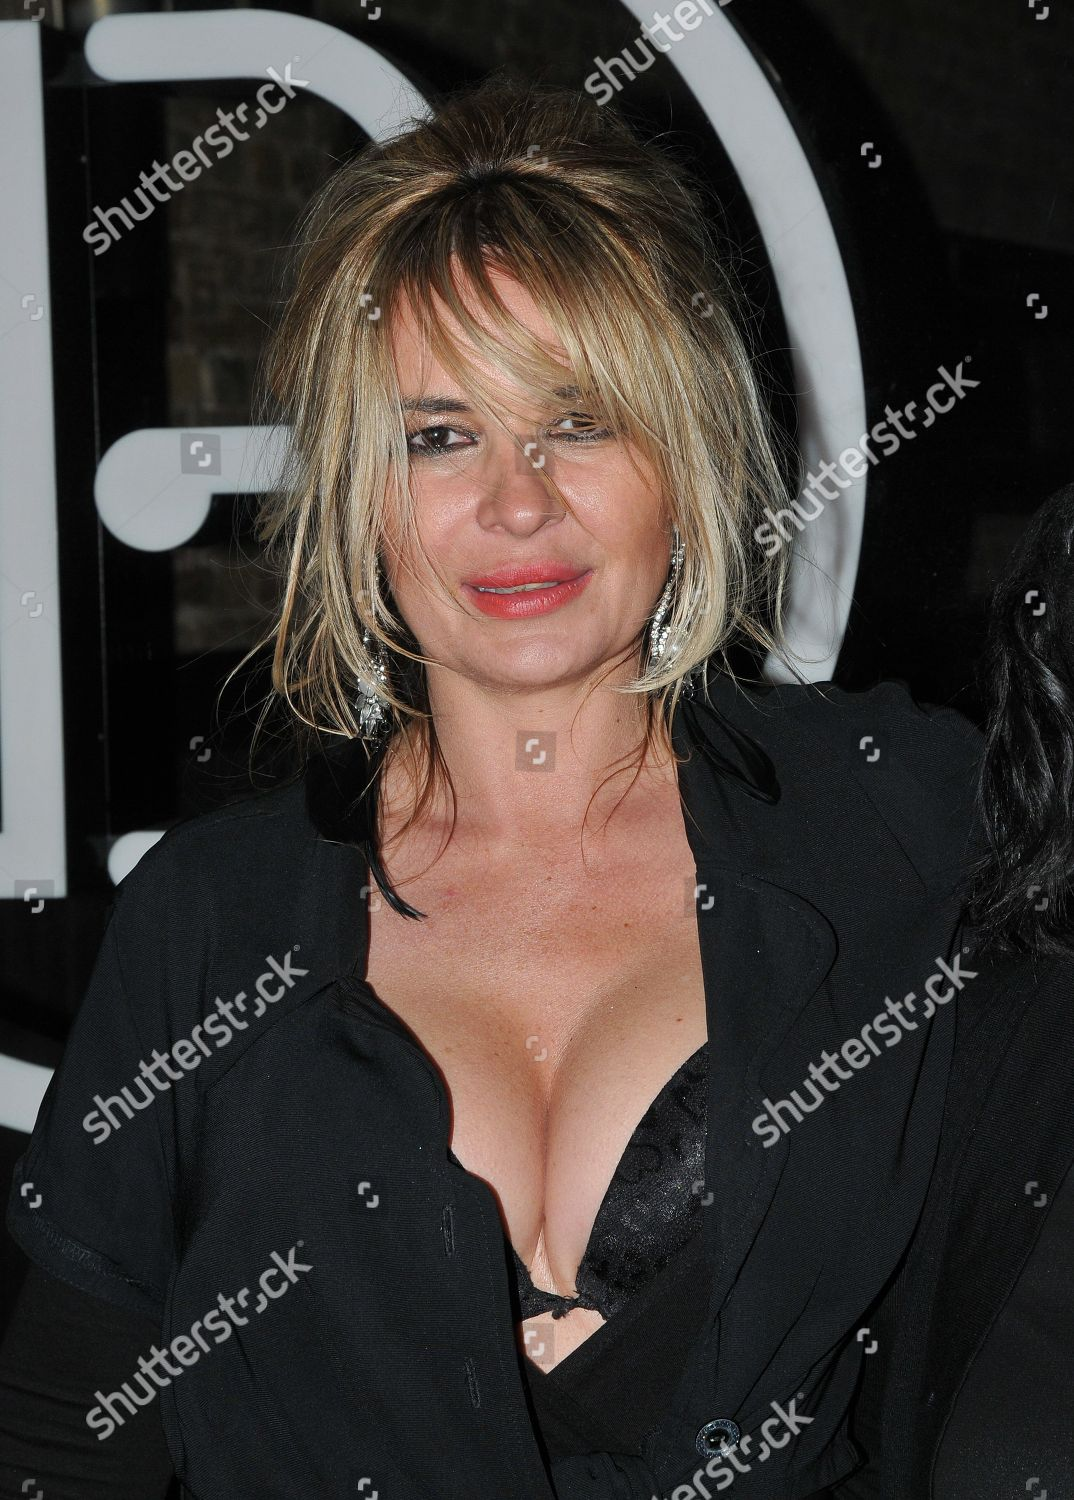 Photos Kierston Wareing nude (13 photo), Ass, Fappening, Feet, legs 2015